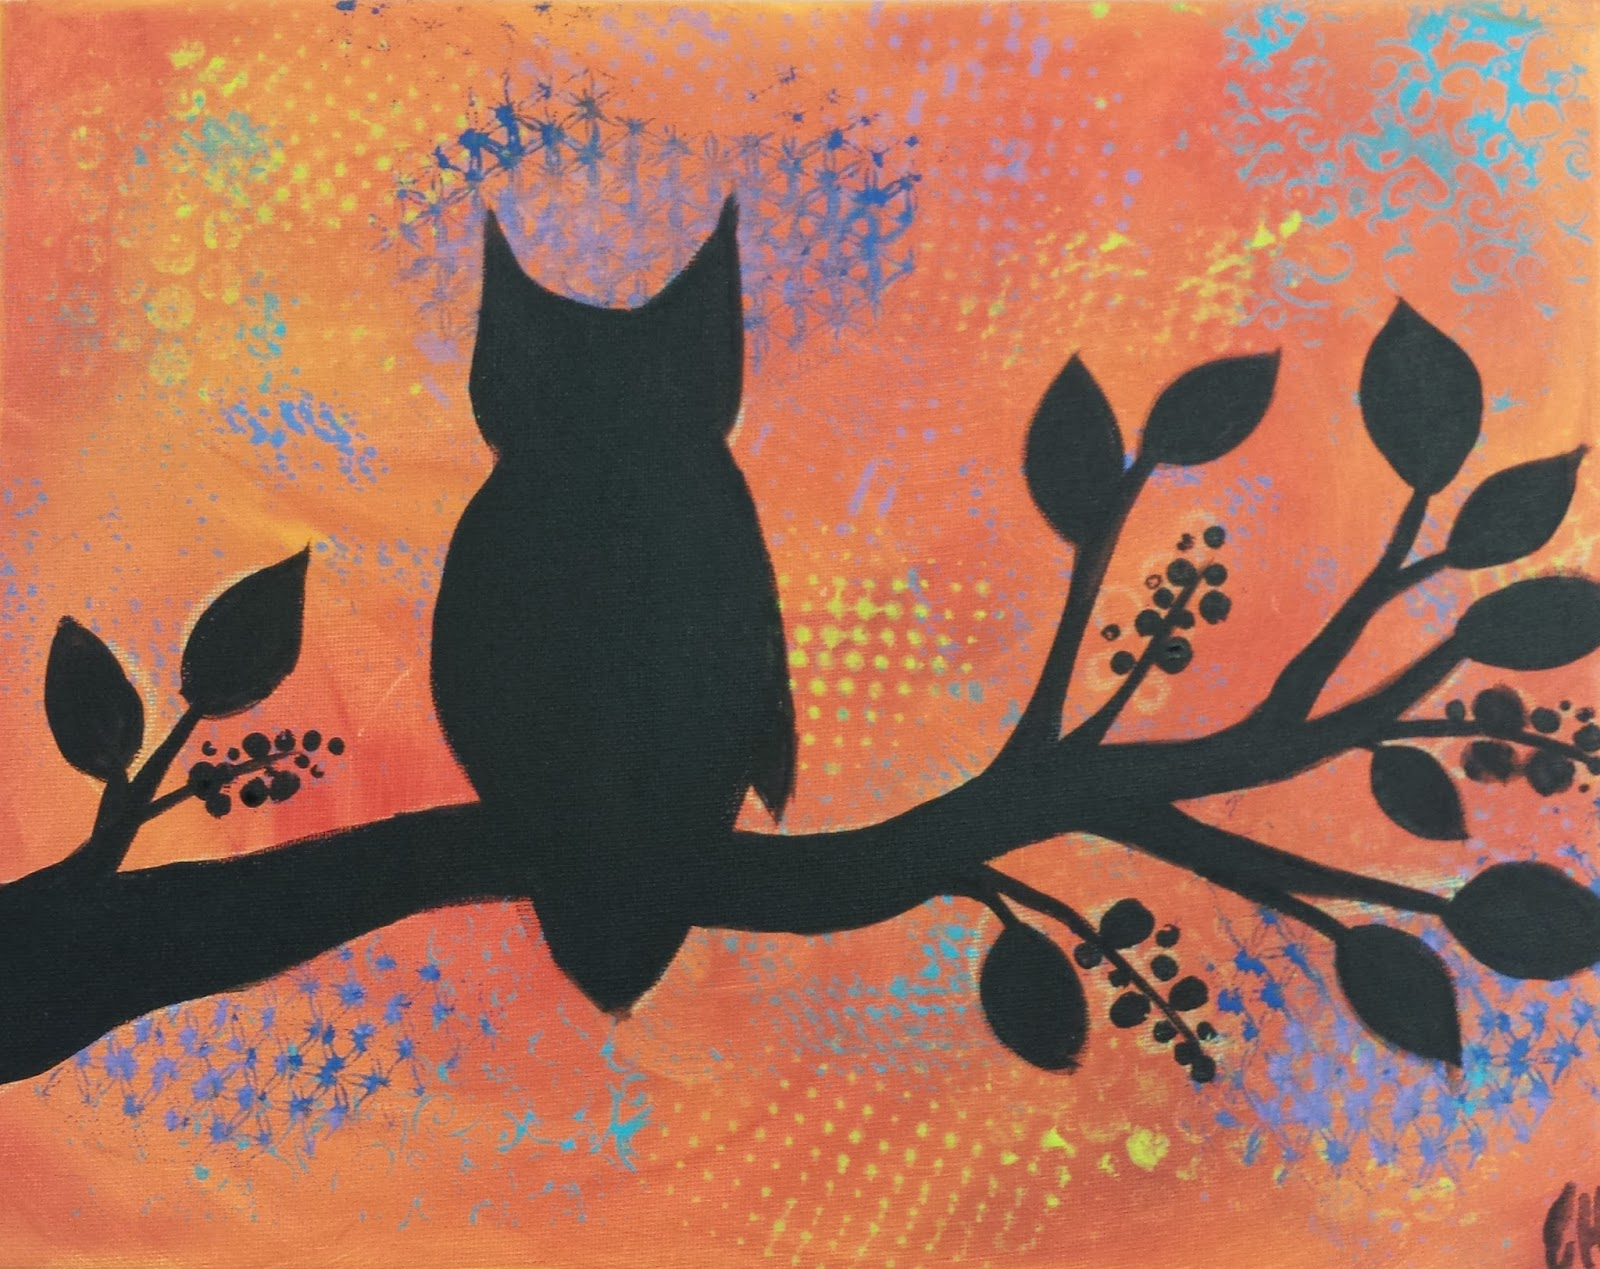 Angela Anderson Art Blog: Owl Silhouette Paintings - Kids Art Class